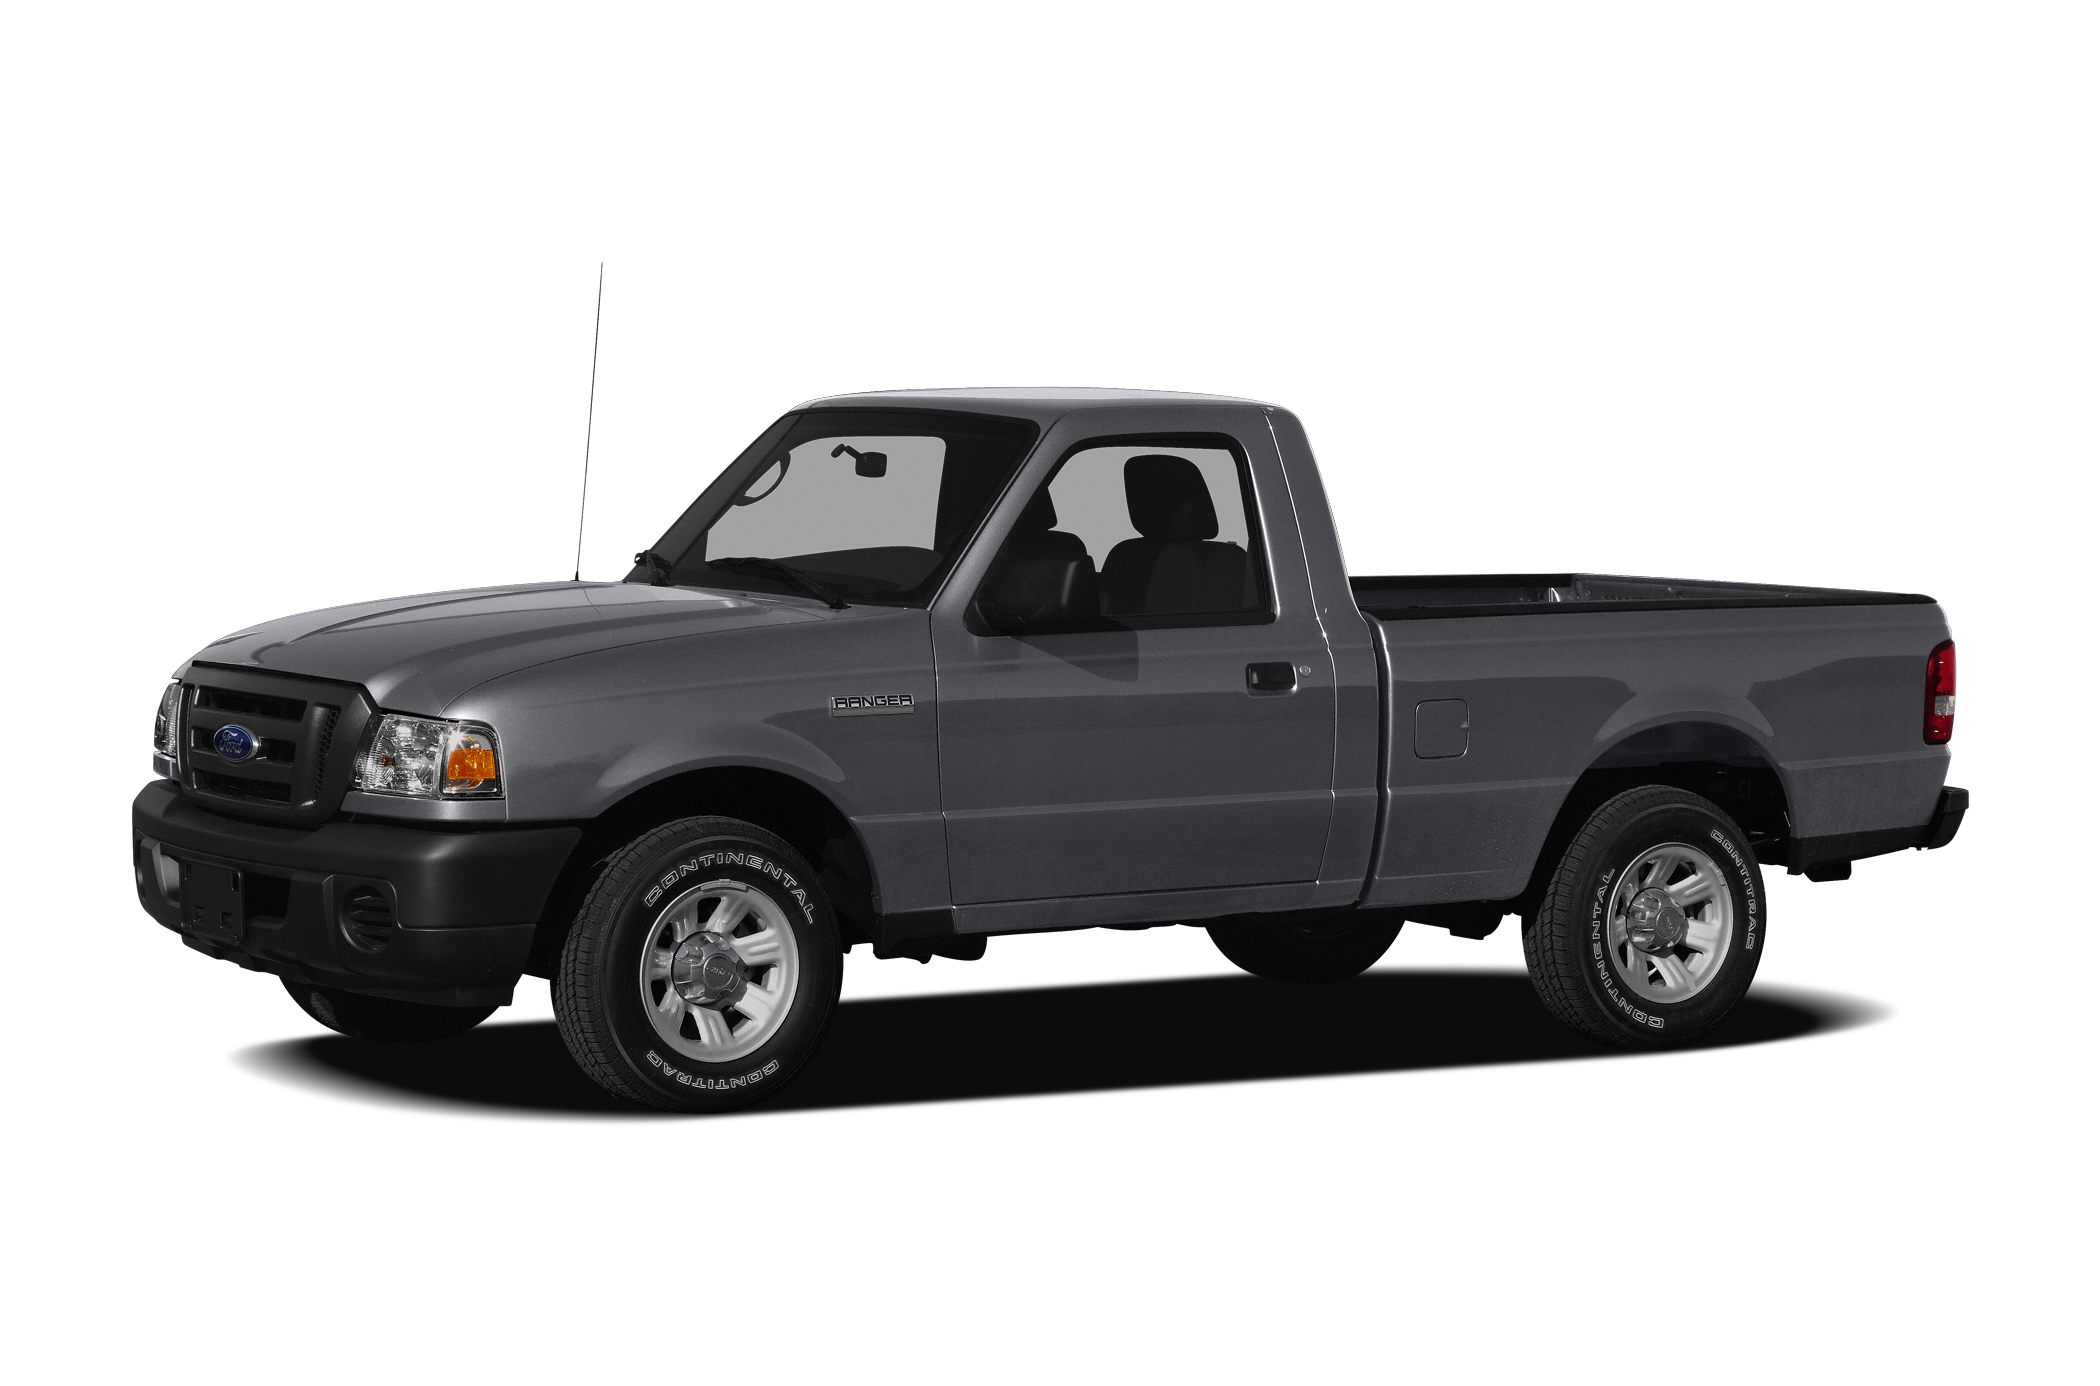 2010 Ford Ranger XL Extended Cab Pickup for sale in San Bernardino for $17,689 with 43,155 miles.